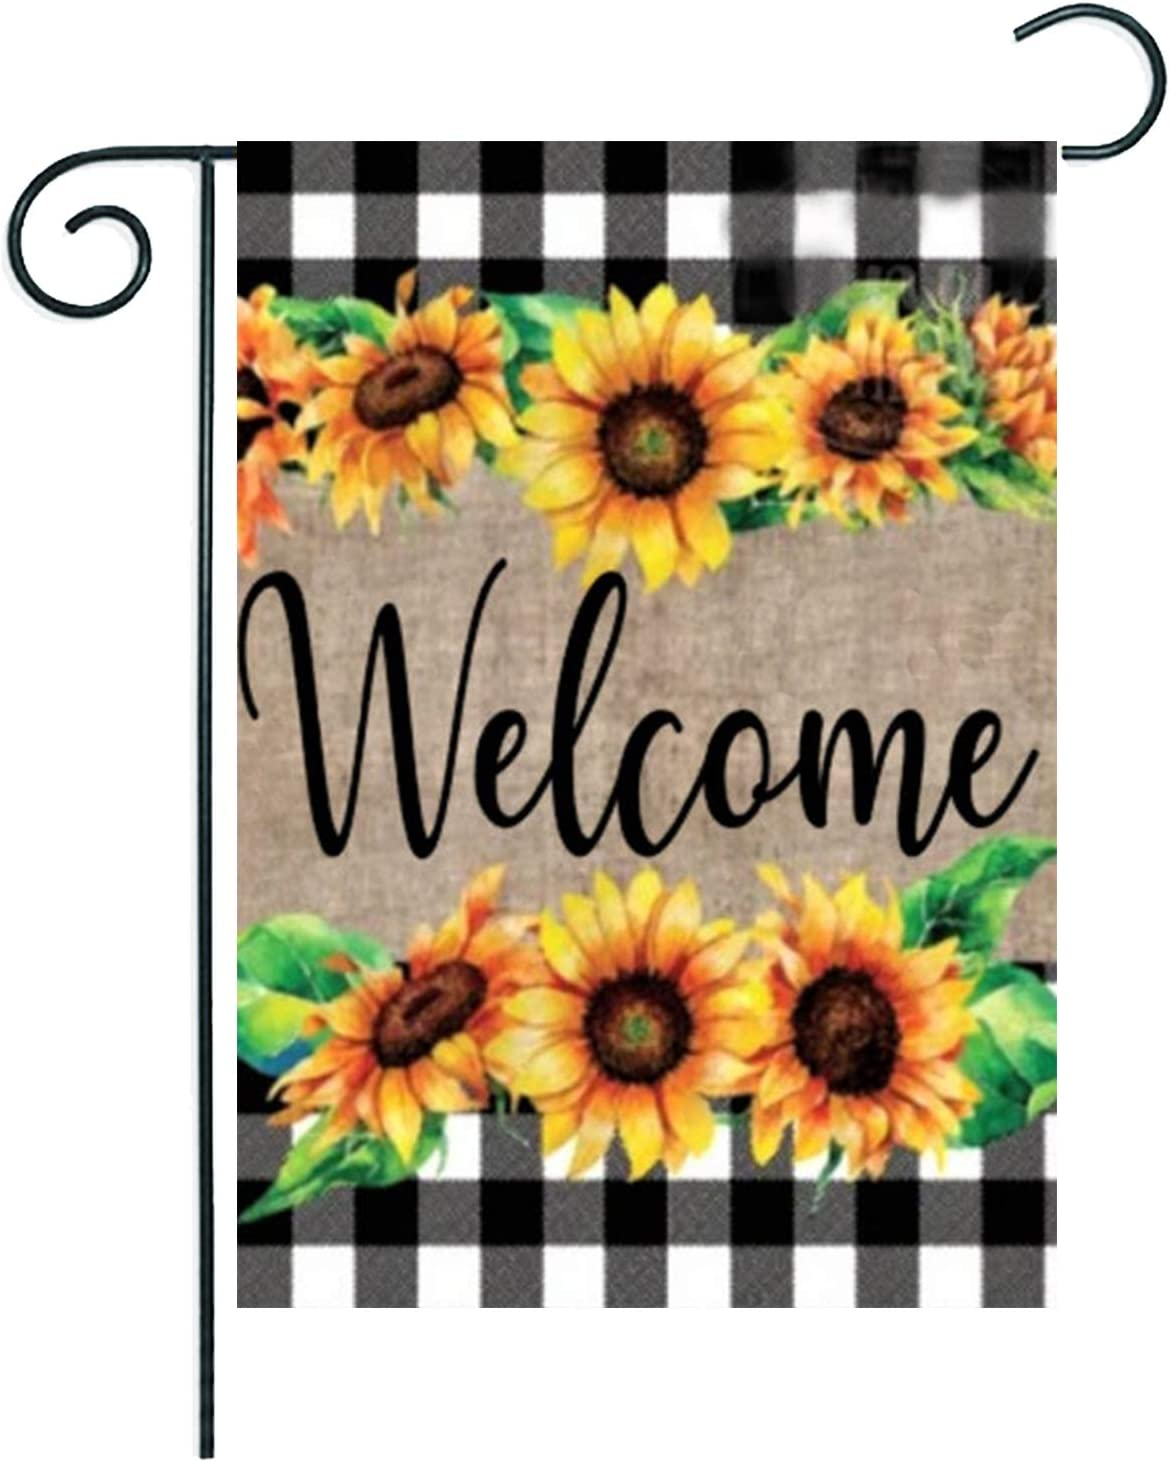 Welcome Sunflower Cluster Baster Garden Flag 12.5x18 Inch Vertical Double Sided, ArtStudy Black White Buffalo Check Plaid Spring Floral Lawn Yard Flag for Thanksgiving Housewarming Wedding Gift